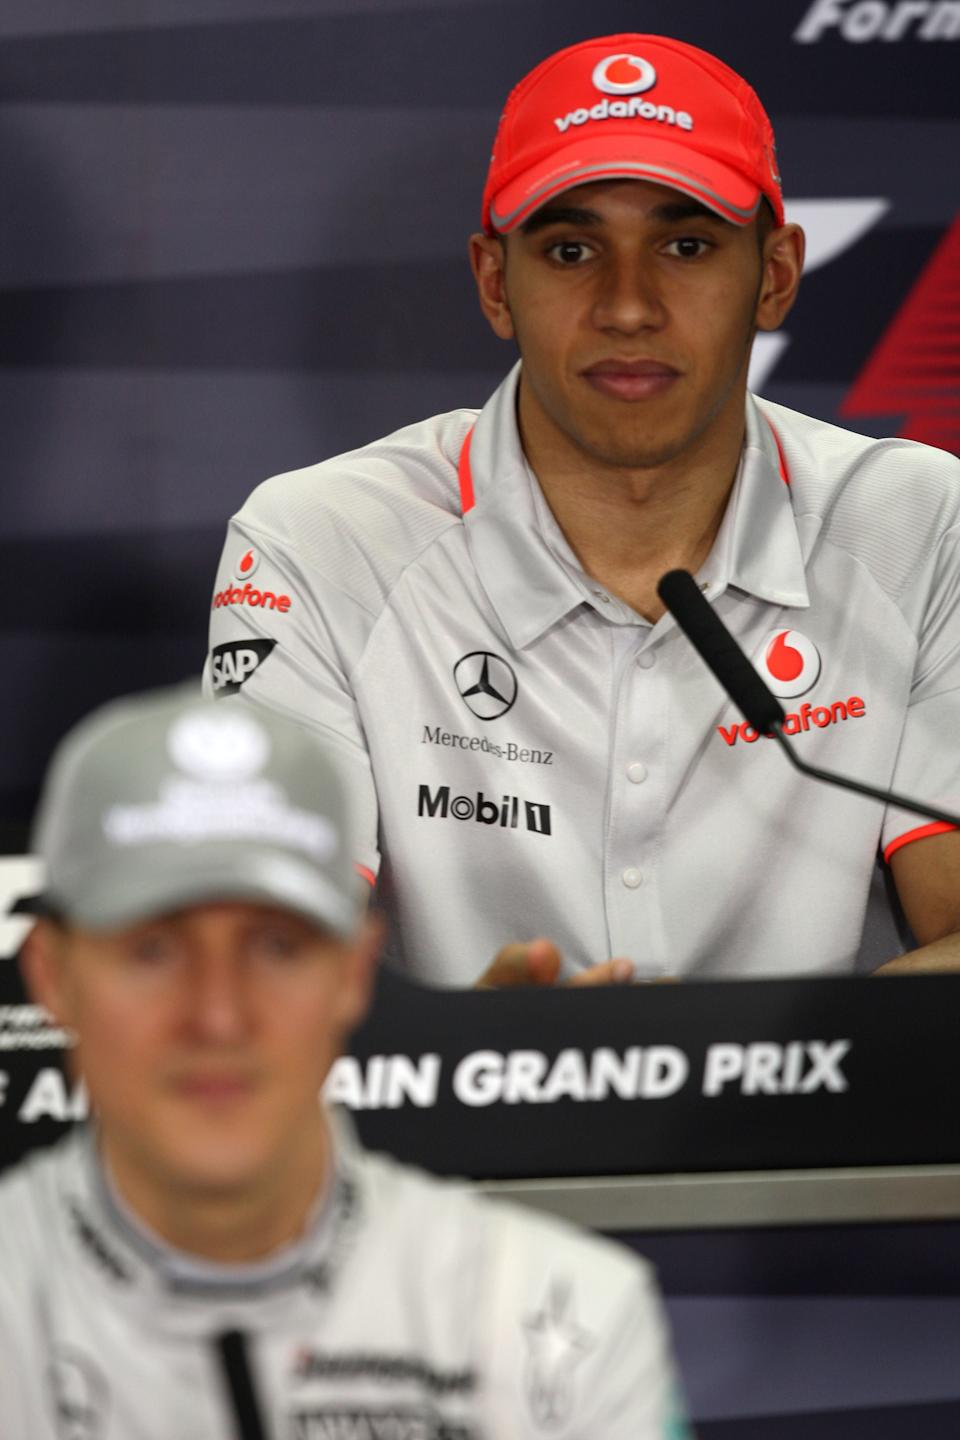 Hamilton's potential was clear, but not even he believed he would beat Schumacher's recordPA